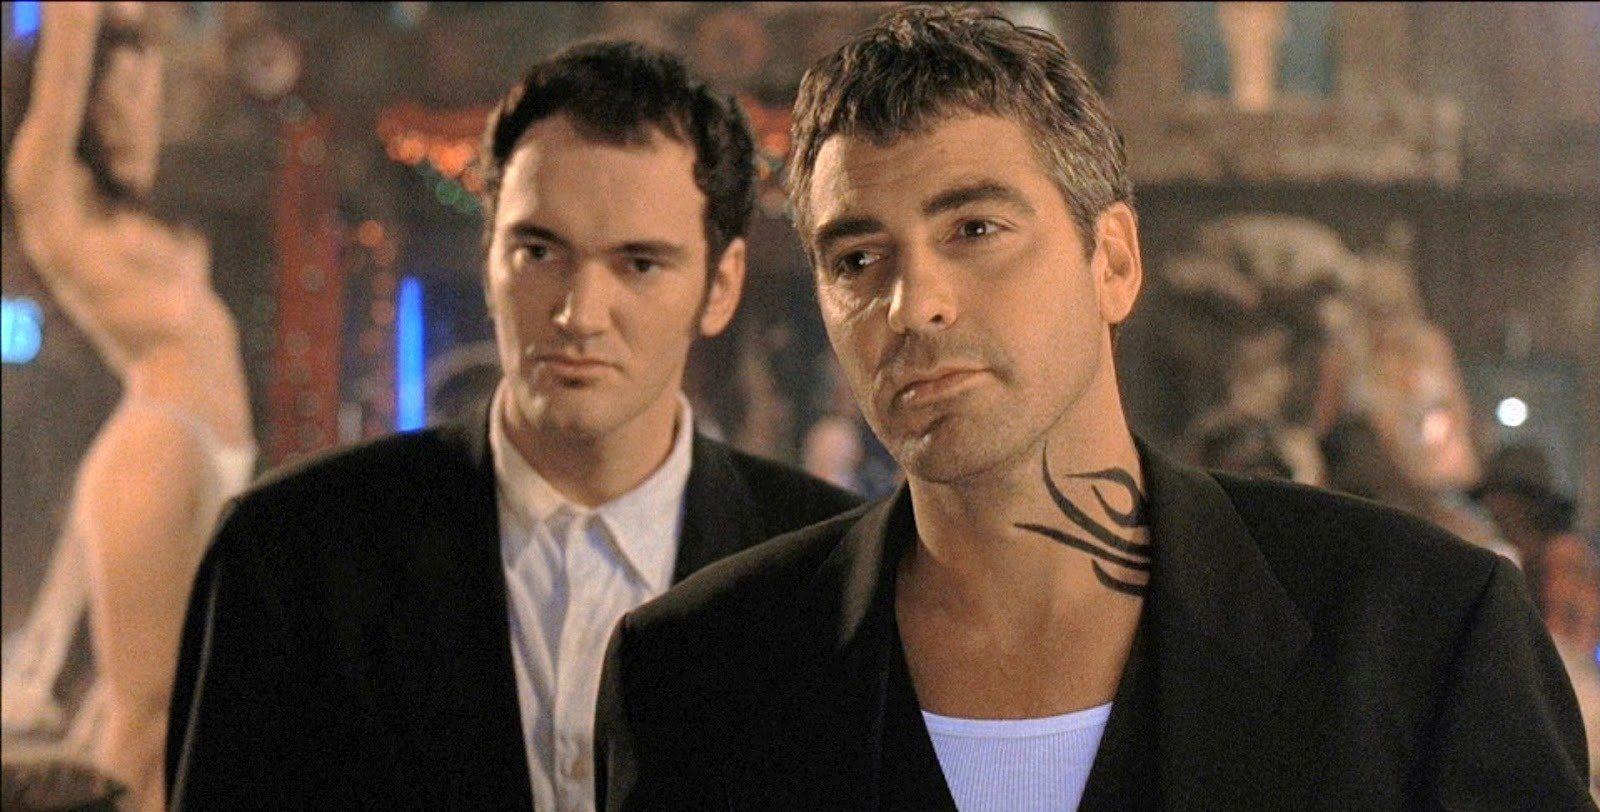 Robert Rodriguez Teases From Dusk Till Dawn 25th Anniversary 4K Release